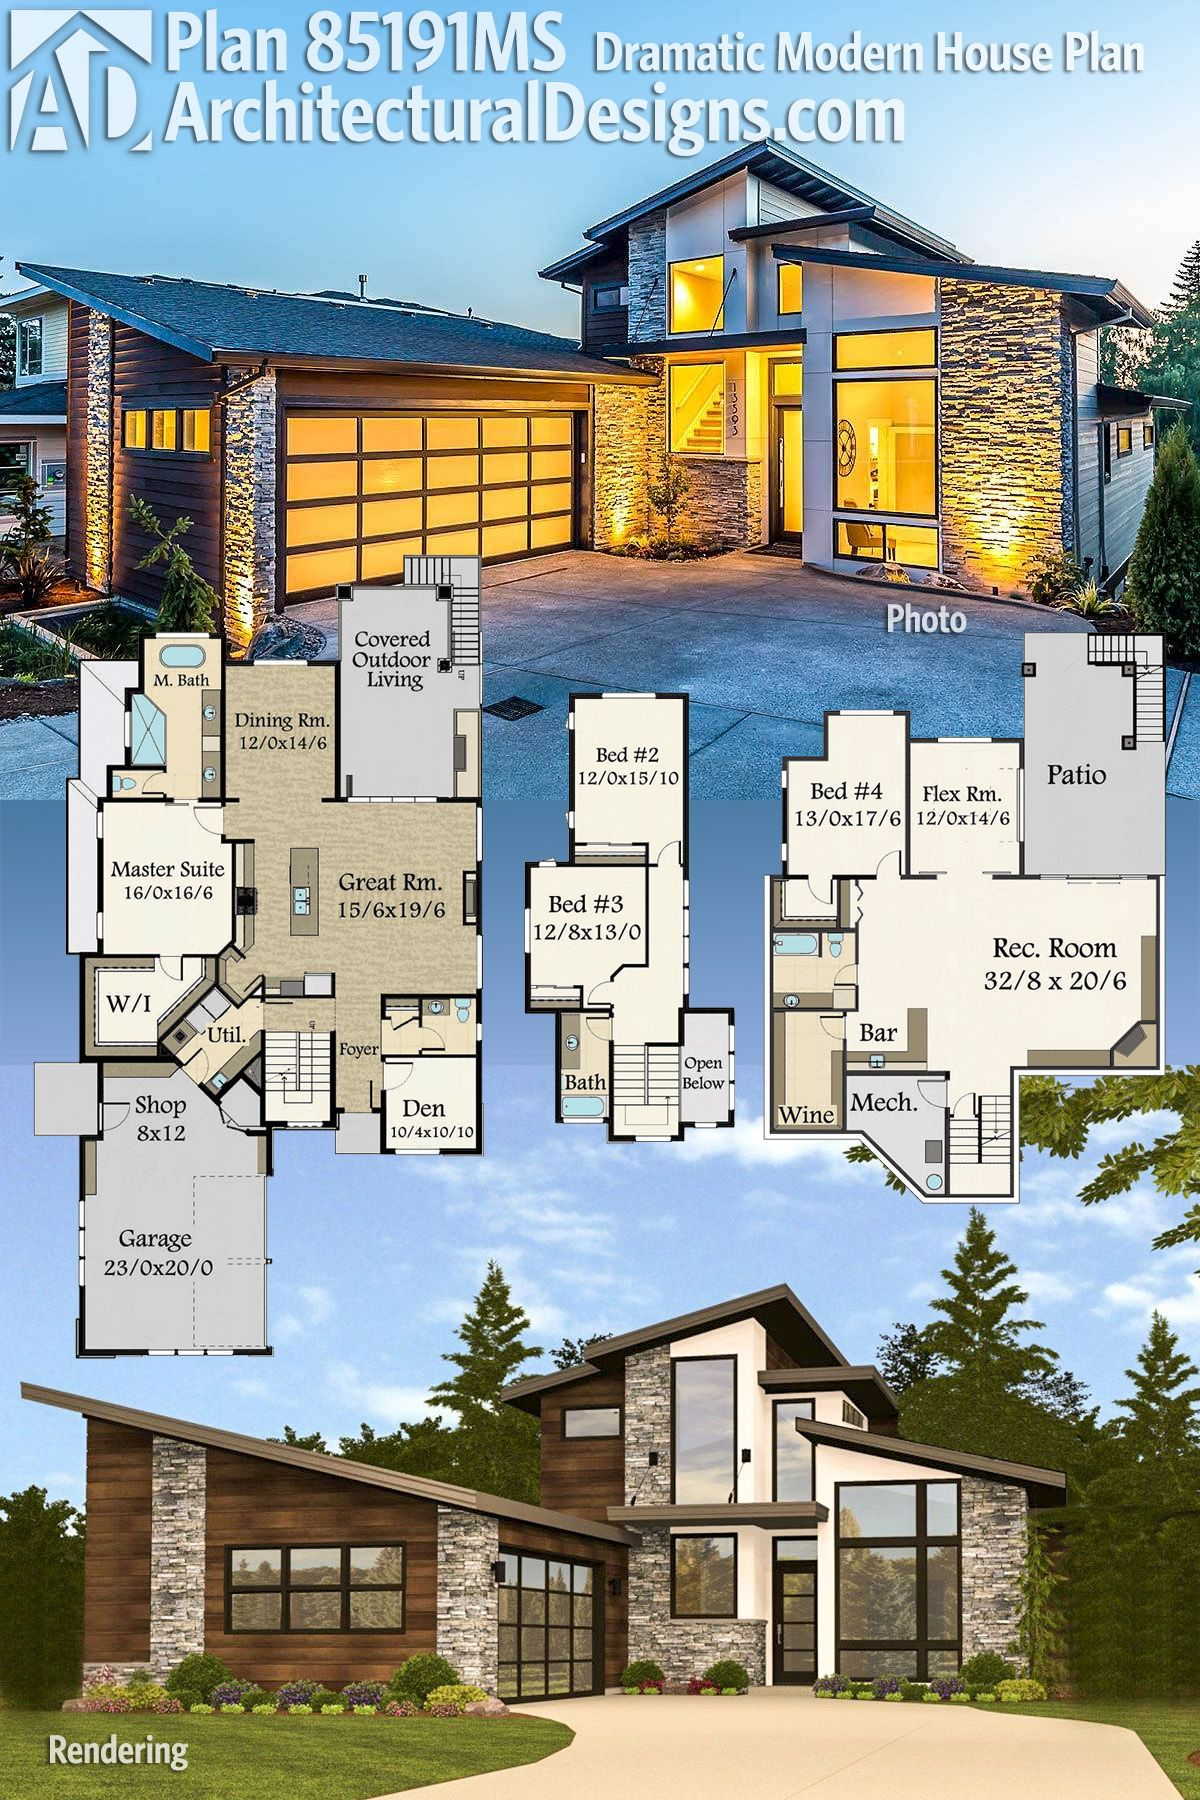 Architectural Designs Modern House Plan 85191MS gives